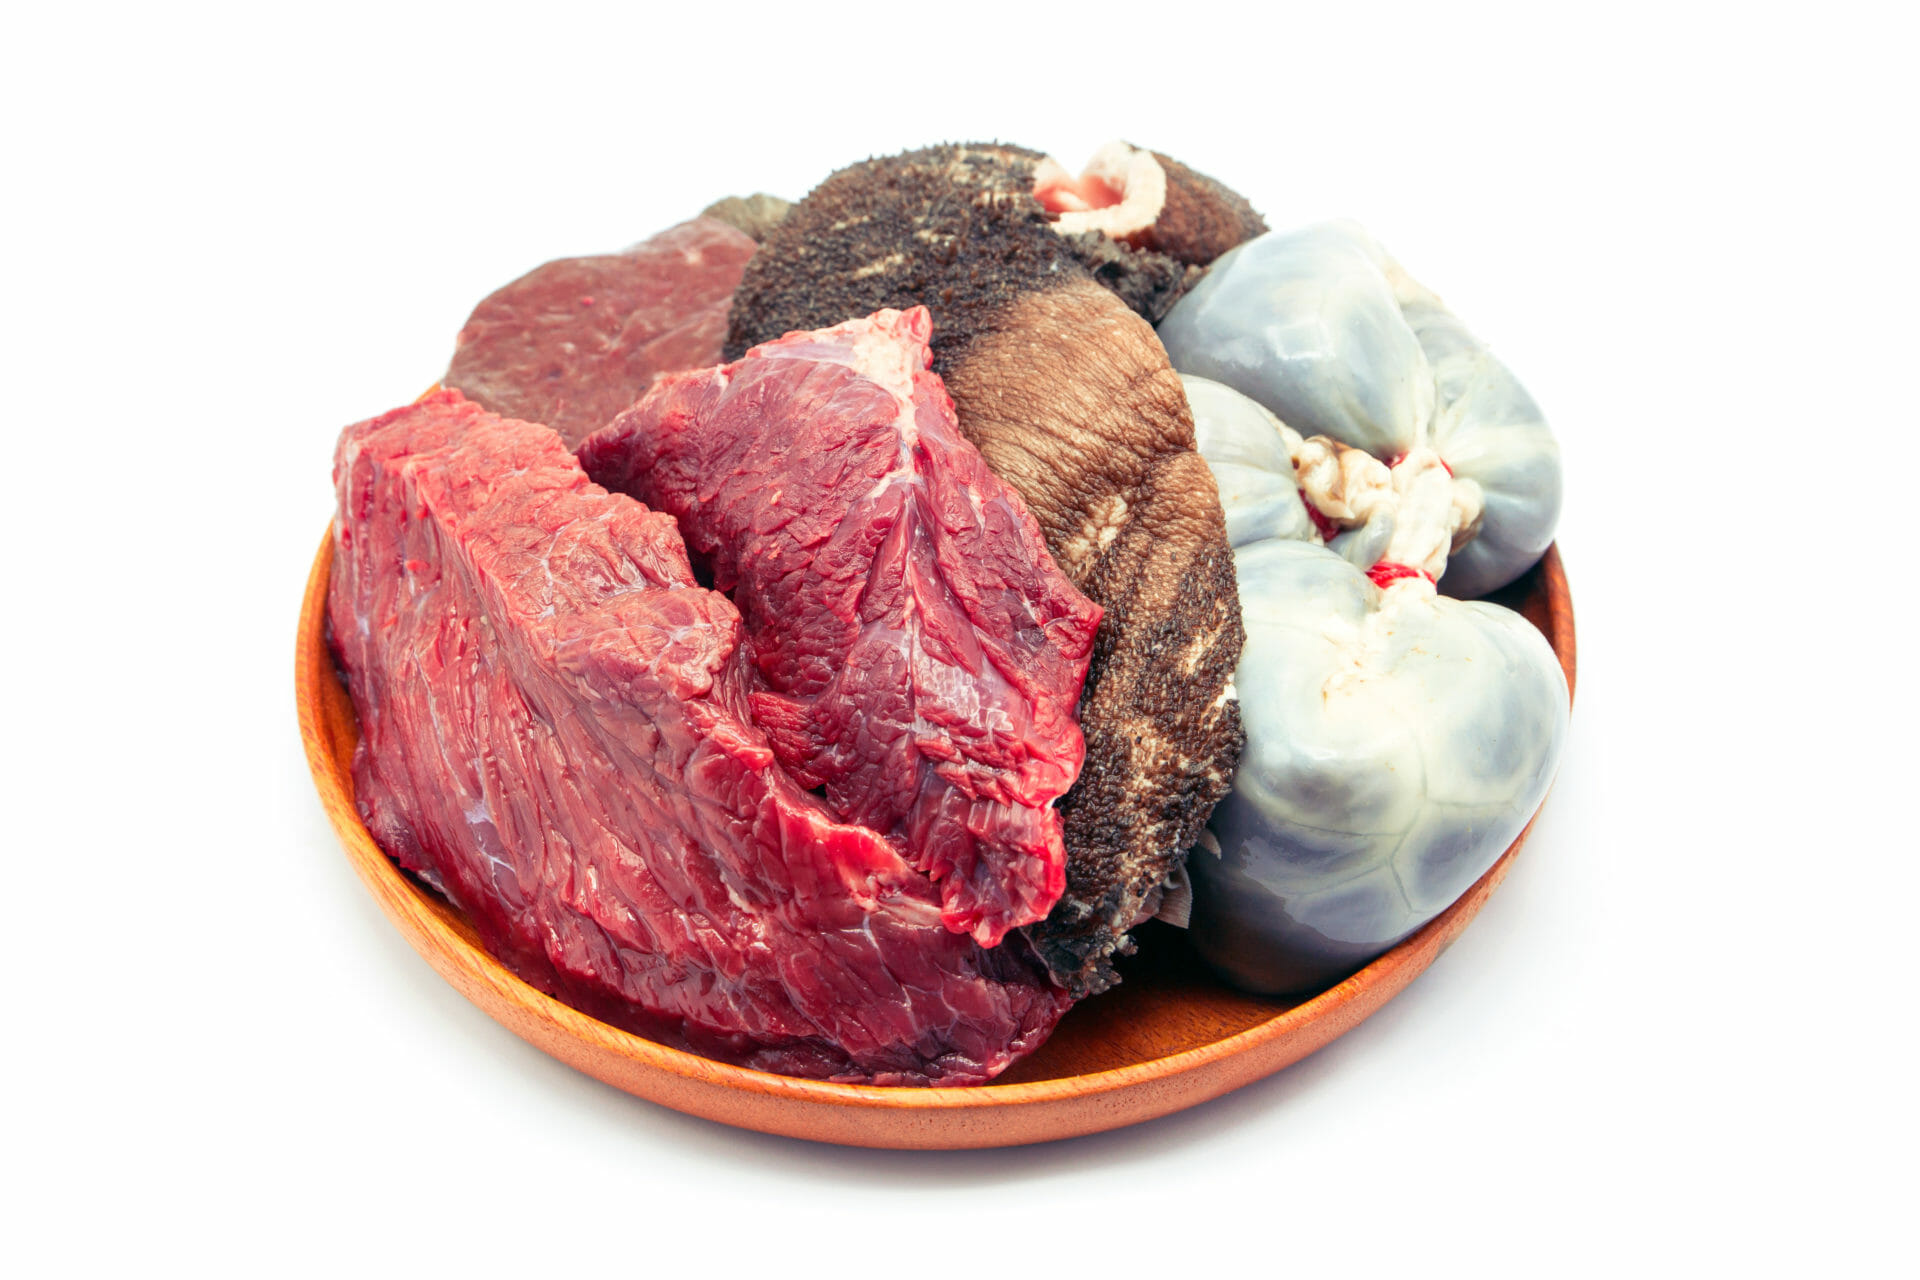 raw beef meat and cow internal organ